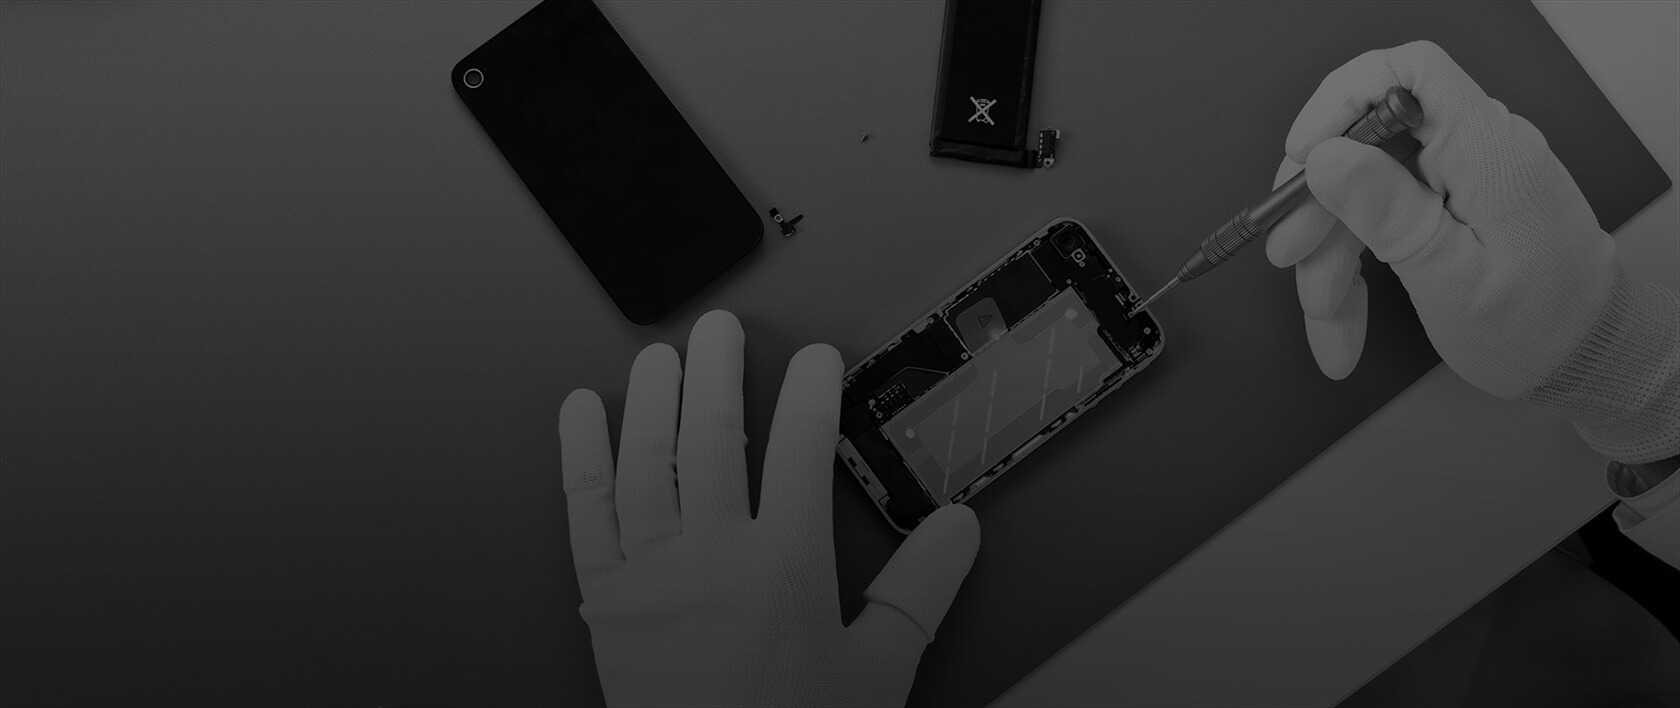 Smartphone, Android & iPad Tablet Repair Experts | Mobile Squad